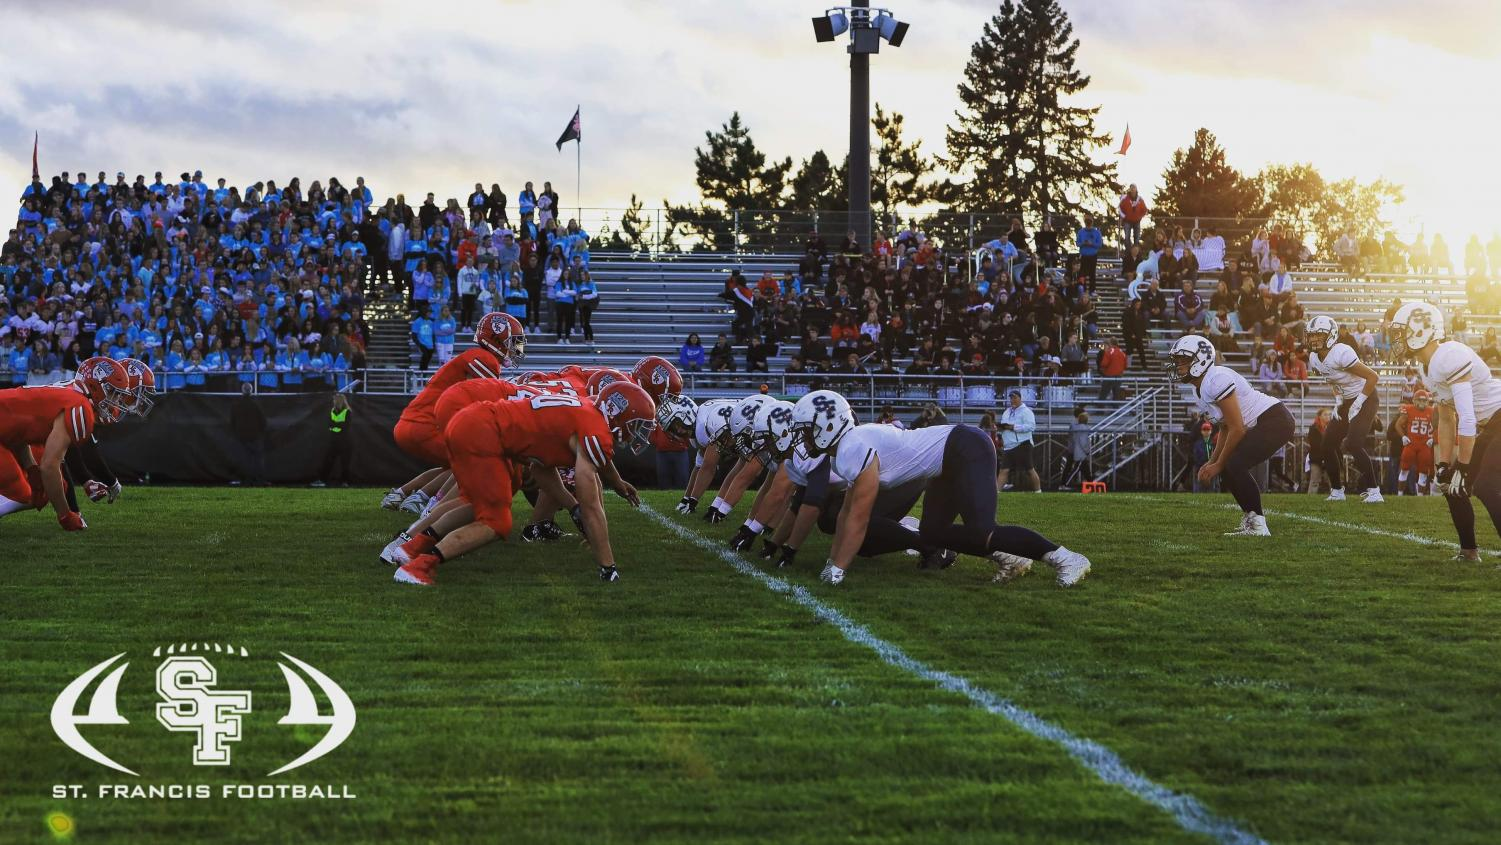 The St. Francis defense verses the Elk River offense Photo by Tony Hoglund